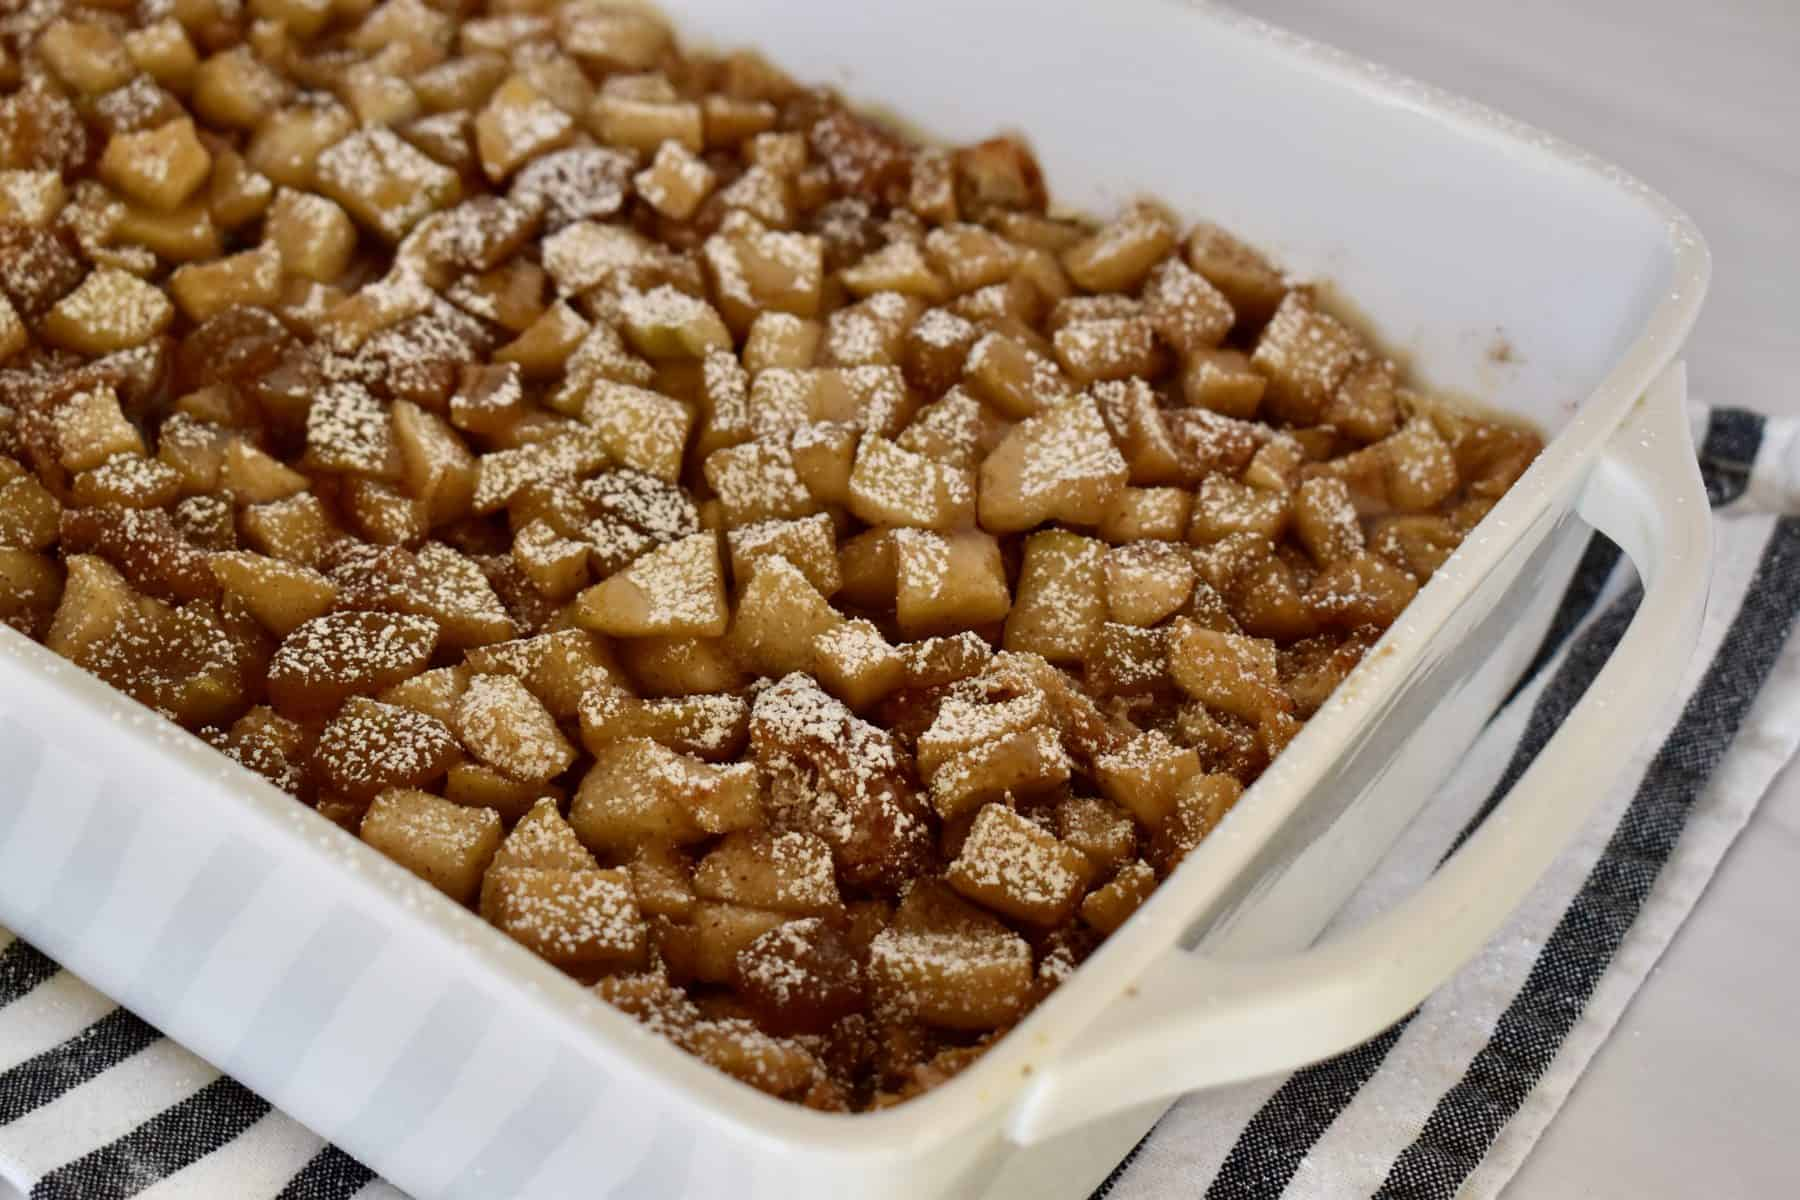 Croissant baked French toast with cinnamon apples in a white baking dish with powdered sugar on top.